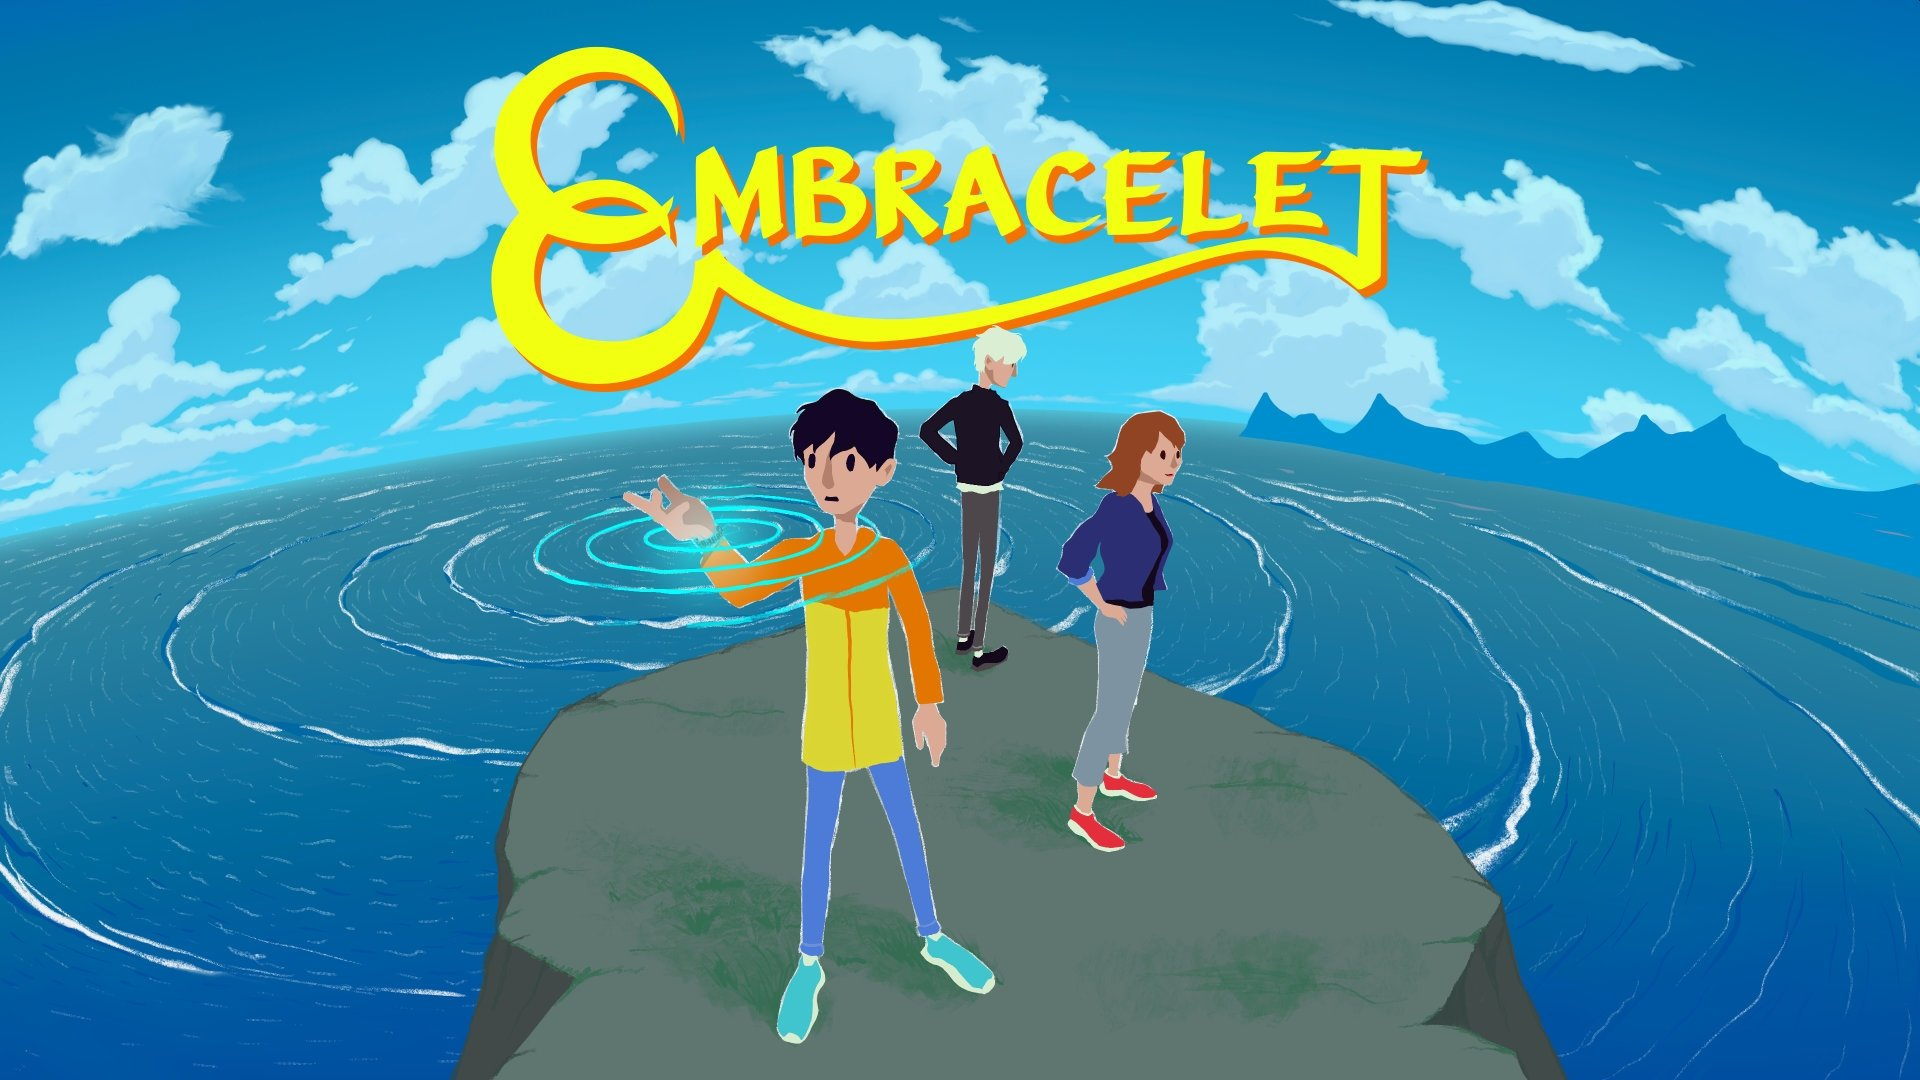 Coming-Of-Age Adventure Game Embracelet Port Headed To iOS On November 26